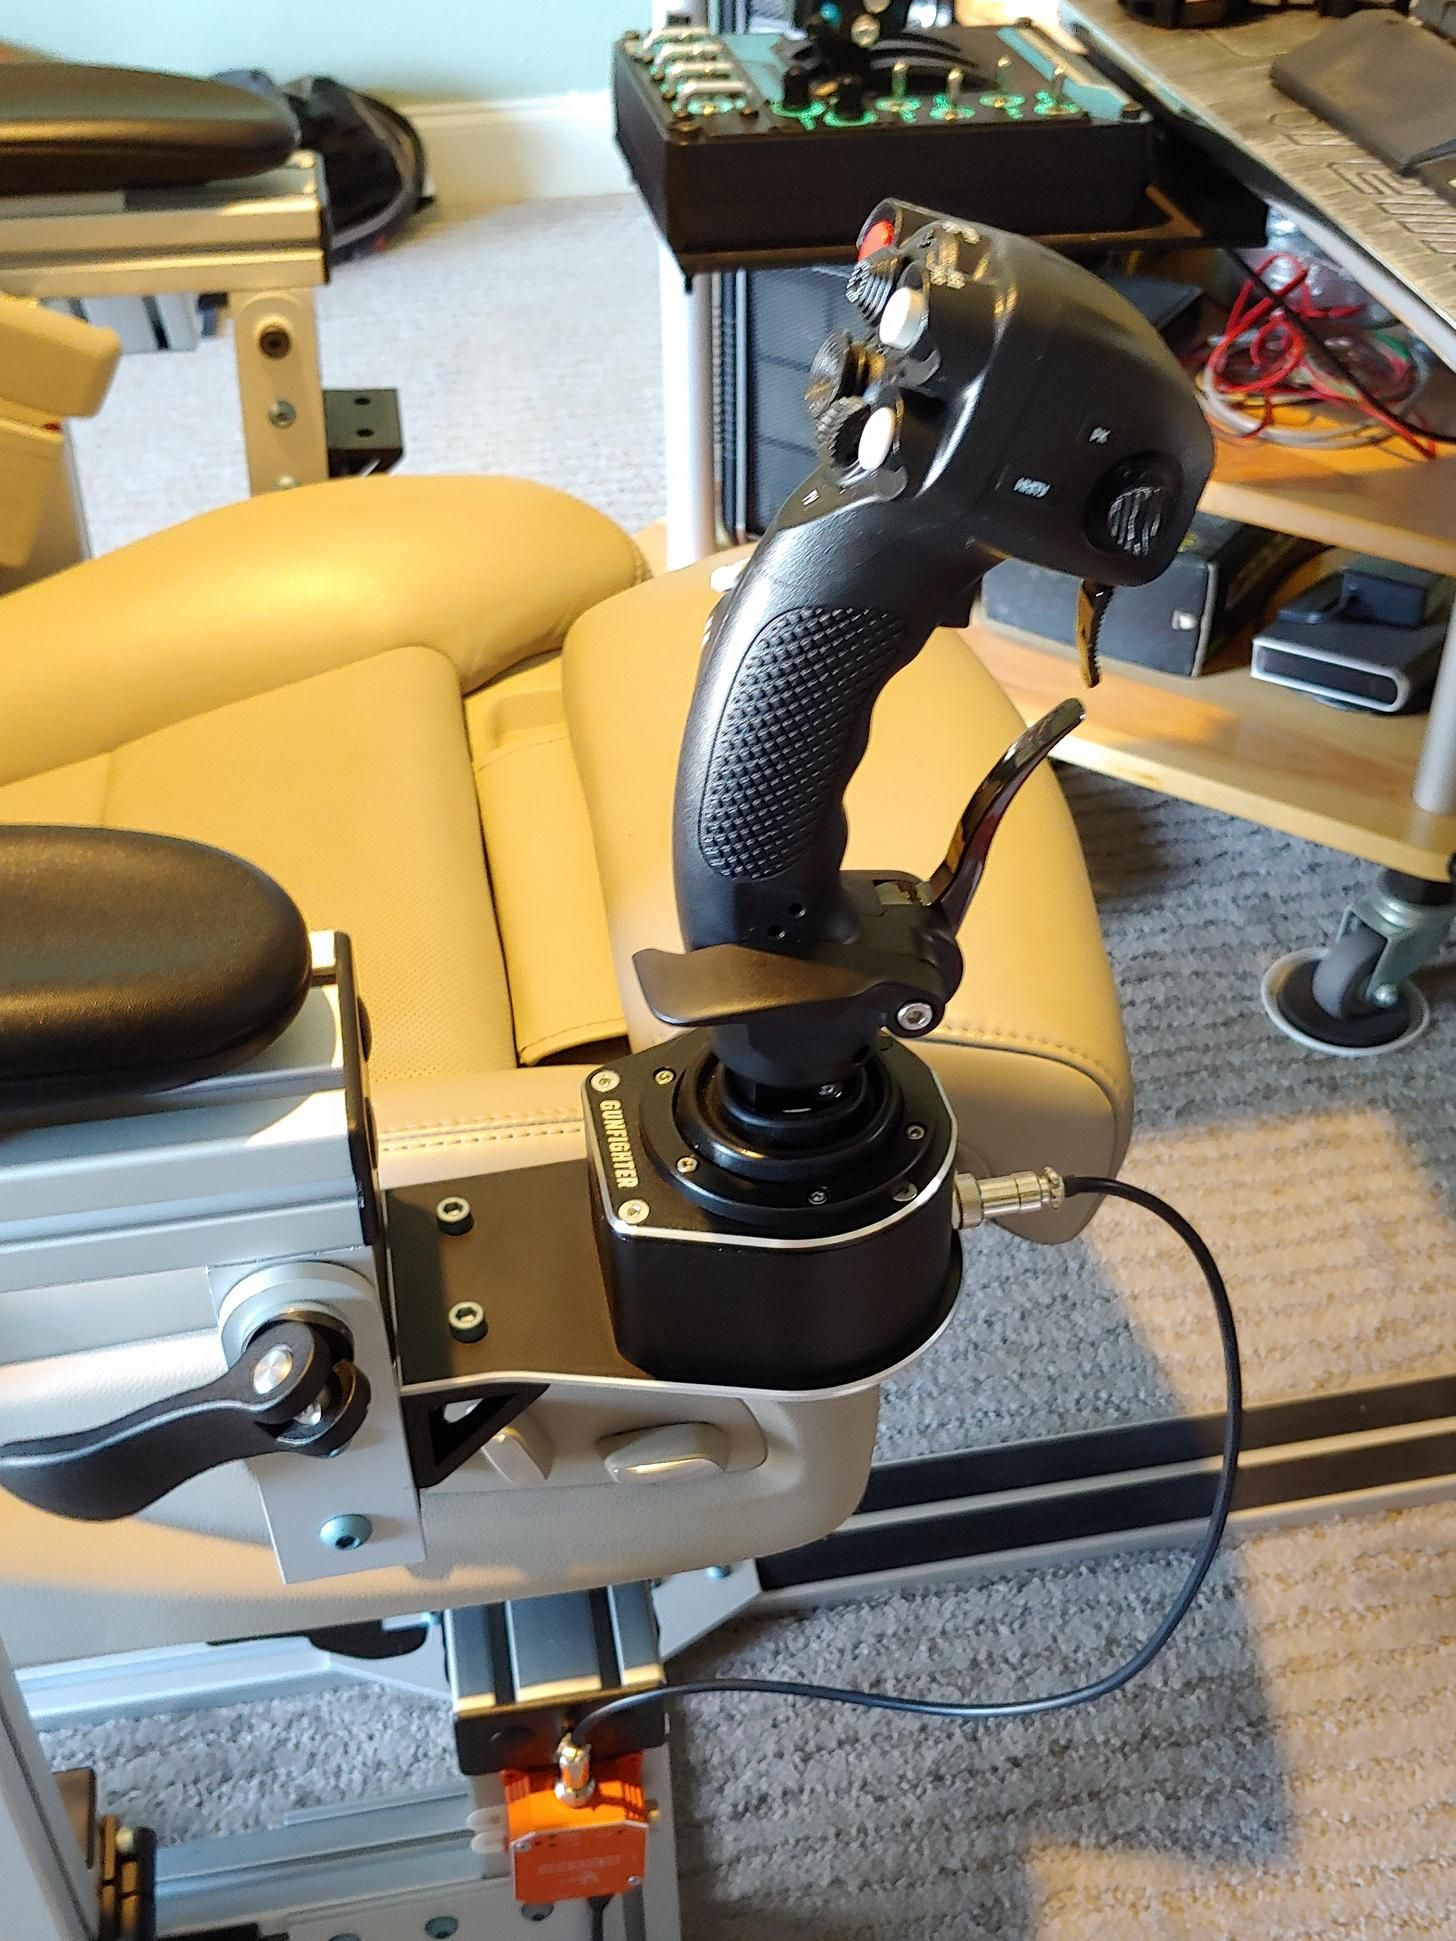 VKB Gunfighter and MCG Pro on custom baseplate to 8020 extrusion